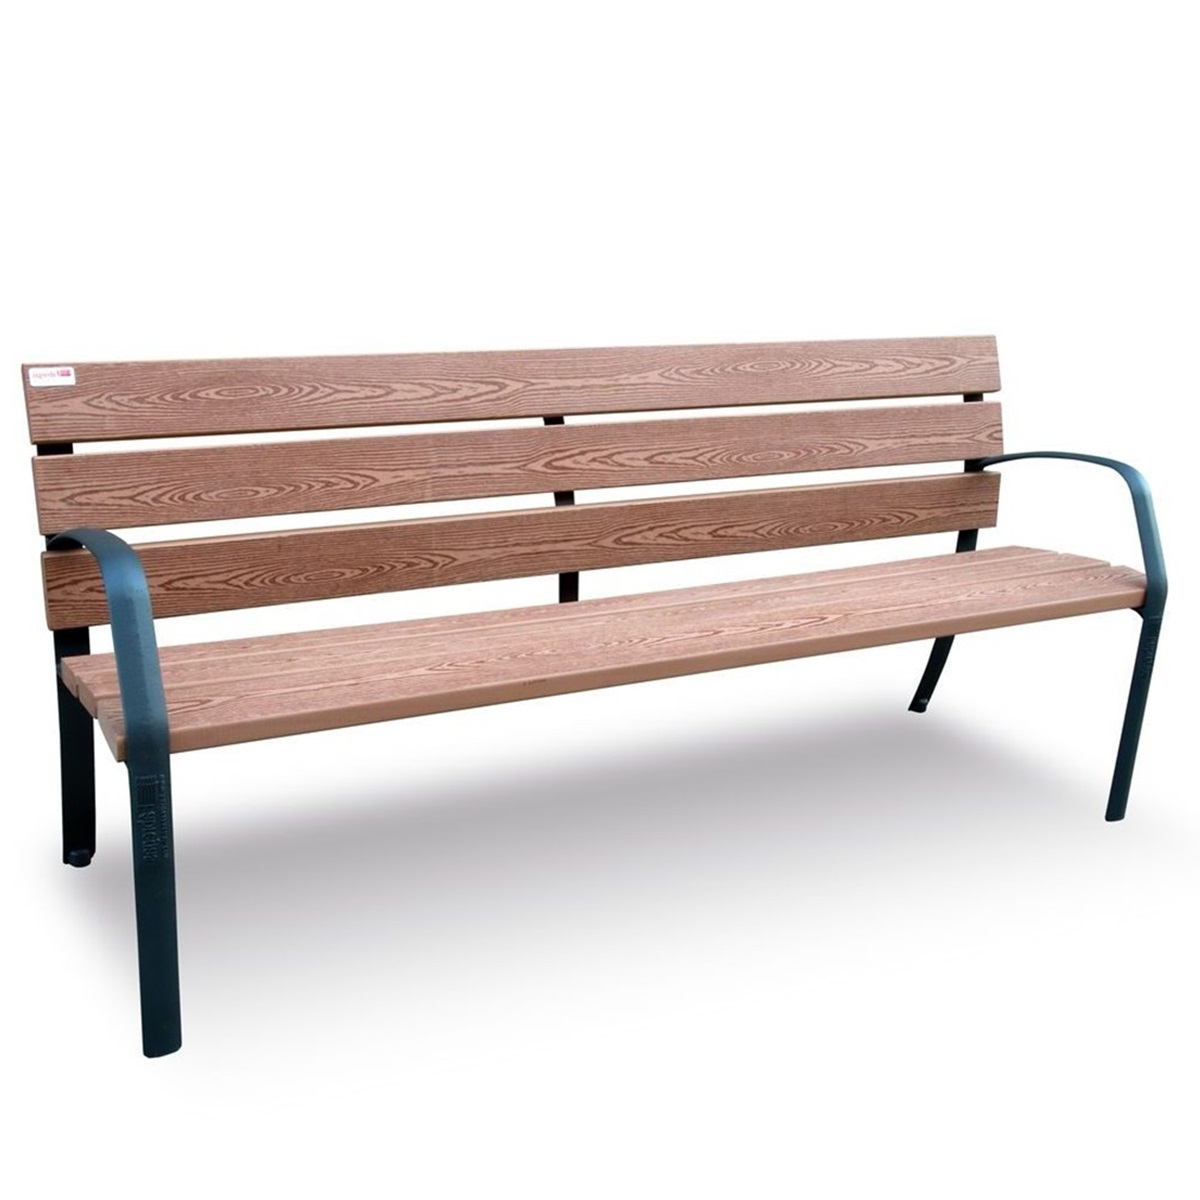 Similar Tecnique Wood Bench C-1016-MT zoomed